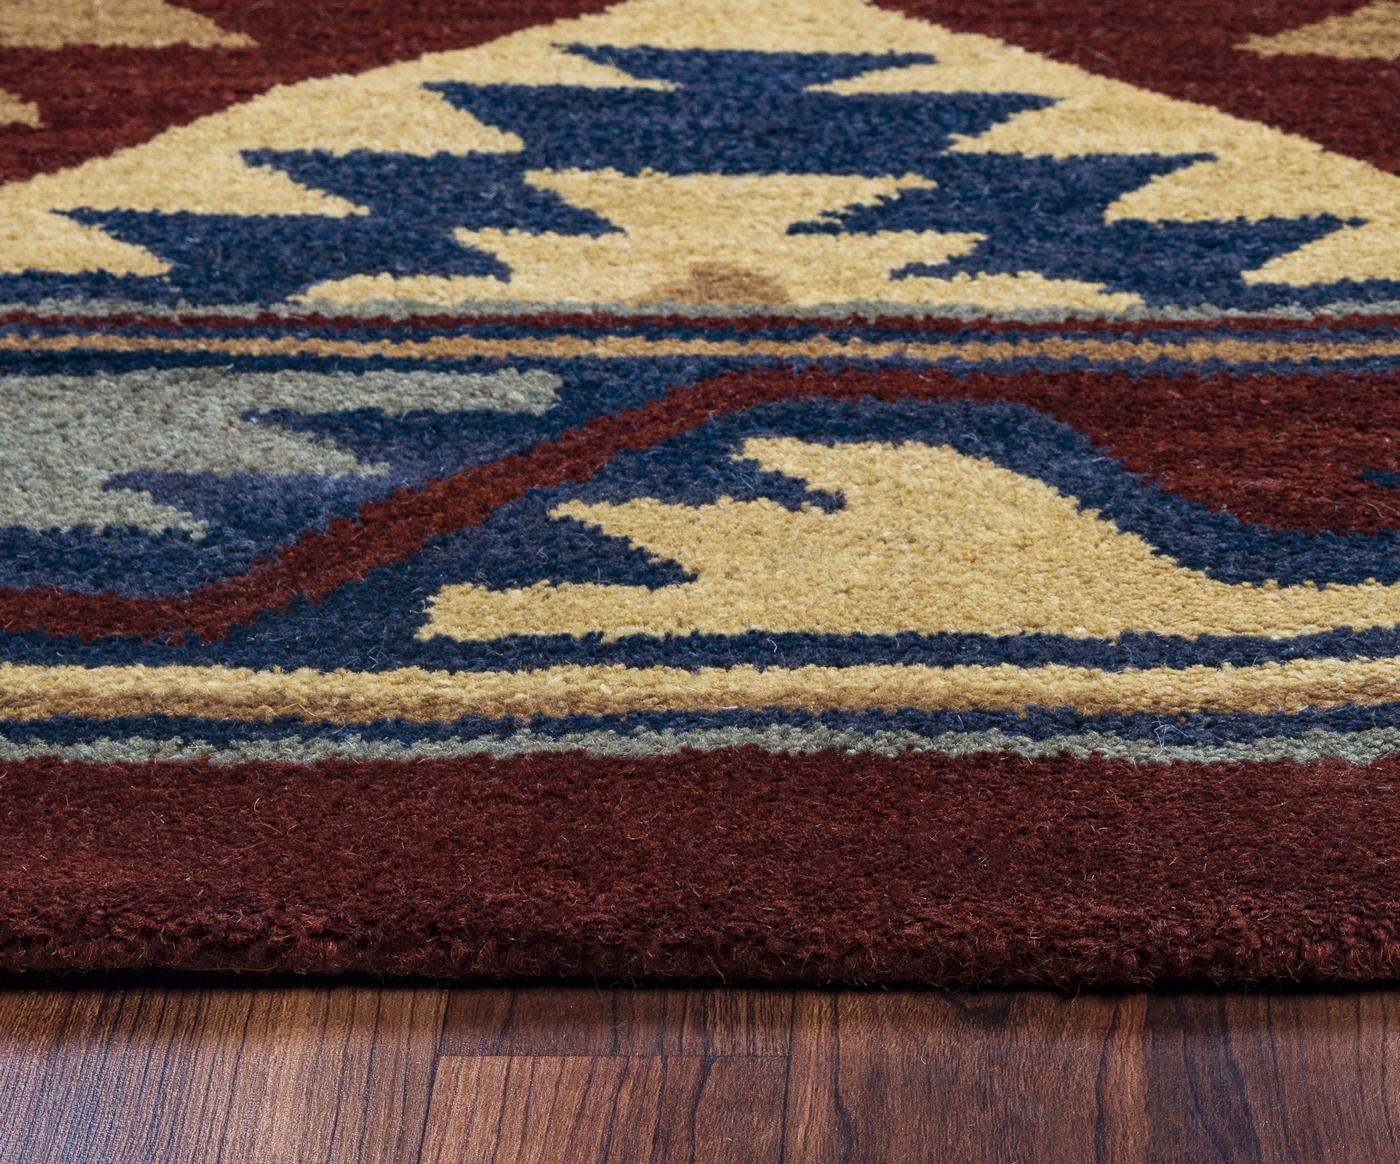 Grey Tan And Brown Area Rug: Southwest Southwest Motif Wool Area Rug In Red Navy Gray